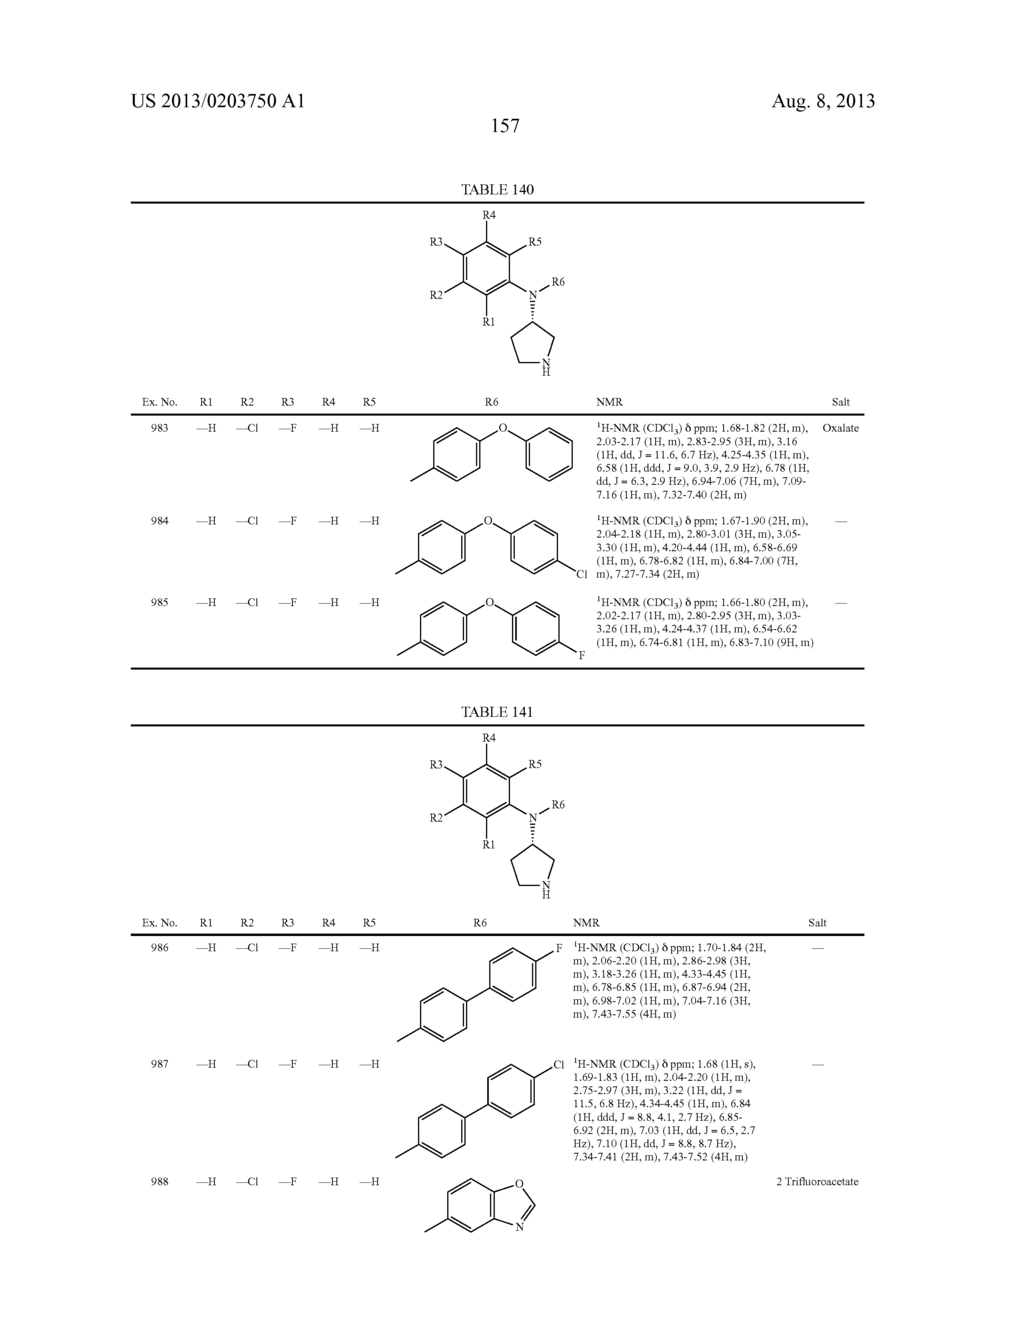 N,N-SUBSTITUTED 3-AMINOPYRROLIDINE COMPOUNDS USEFUL AS MONOAMINES REUPTAKE     INHIBITORS - diagram, schematic, and image 158